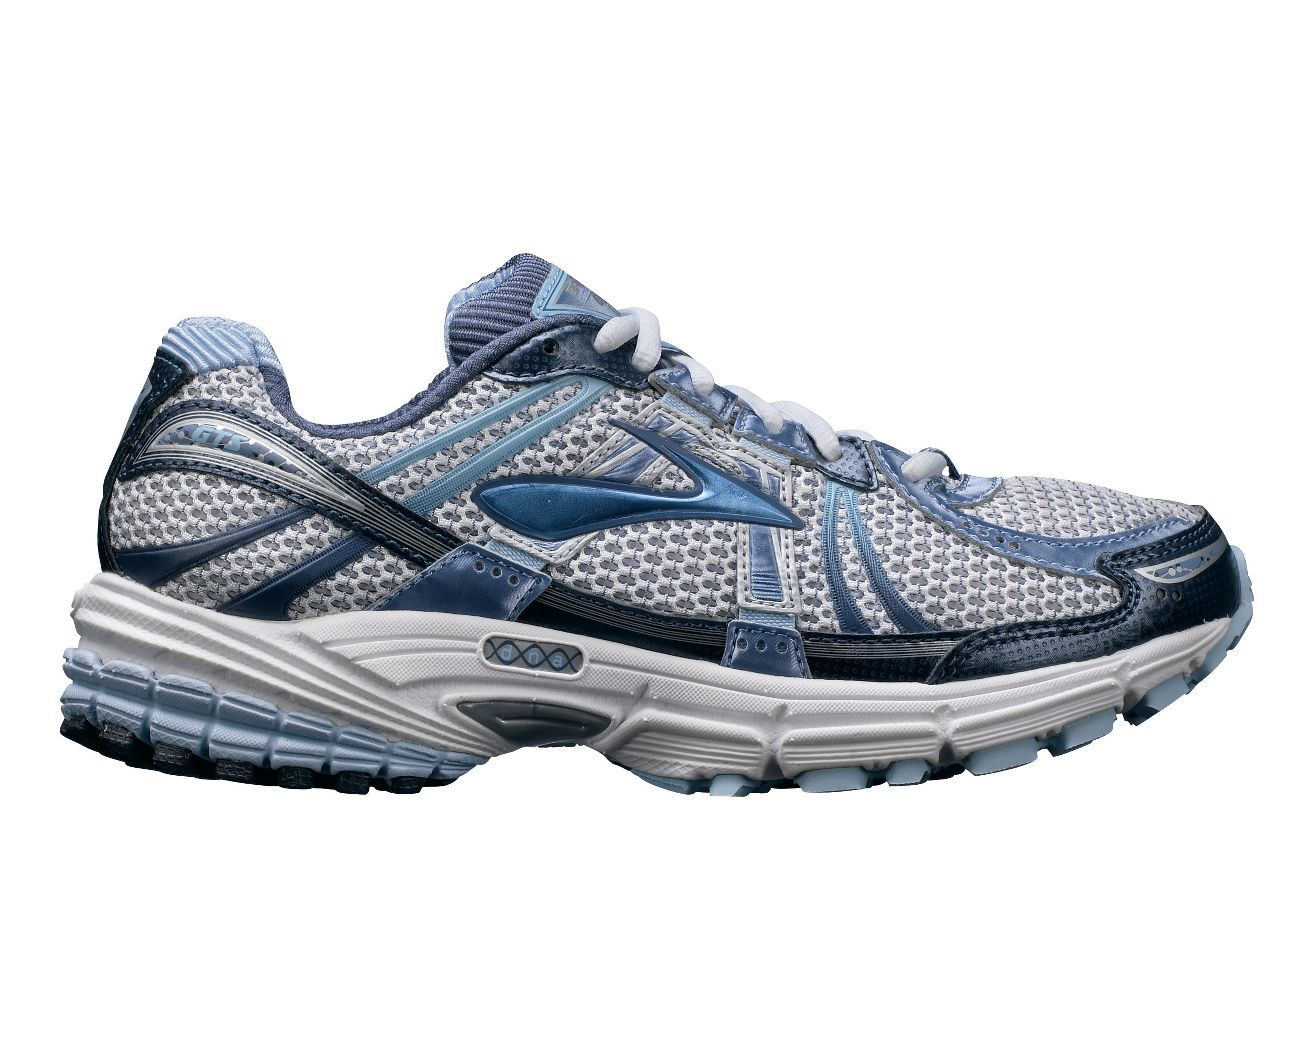 Road Runner Sports Shoe Reviews